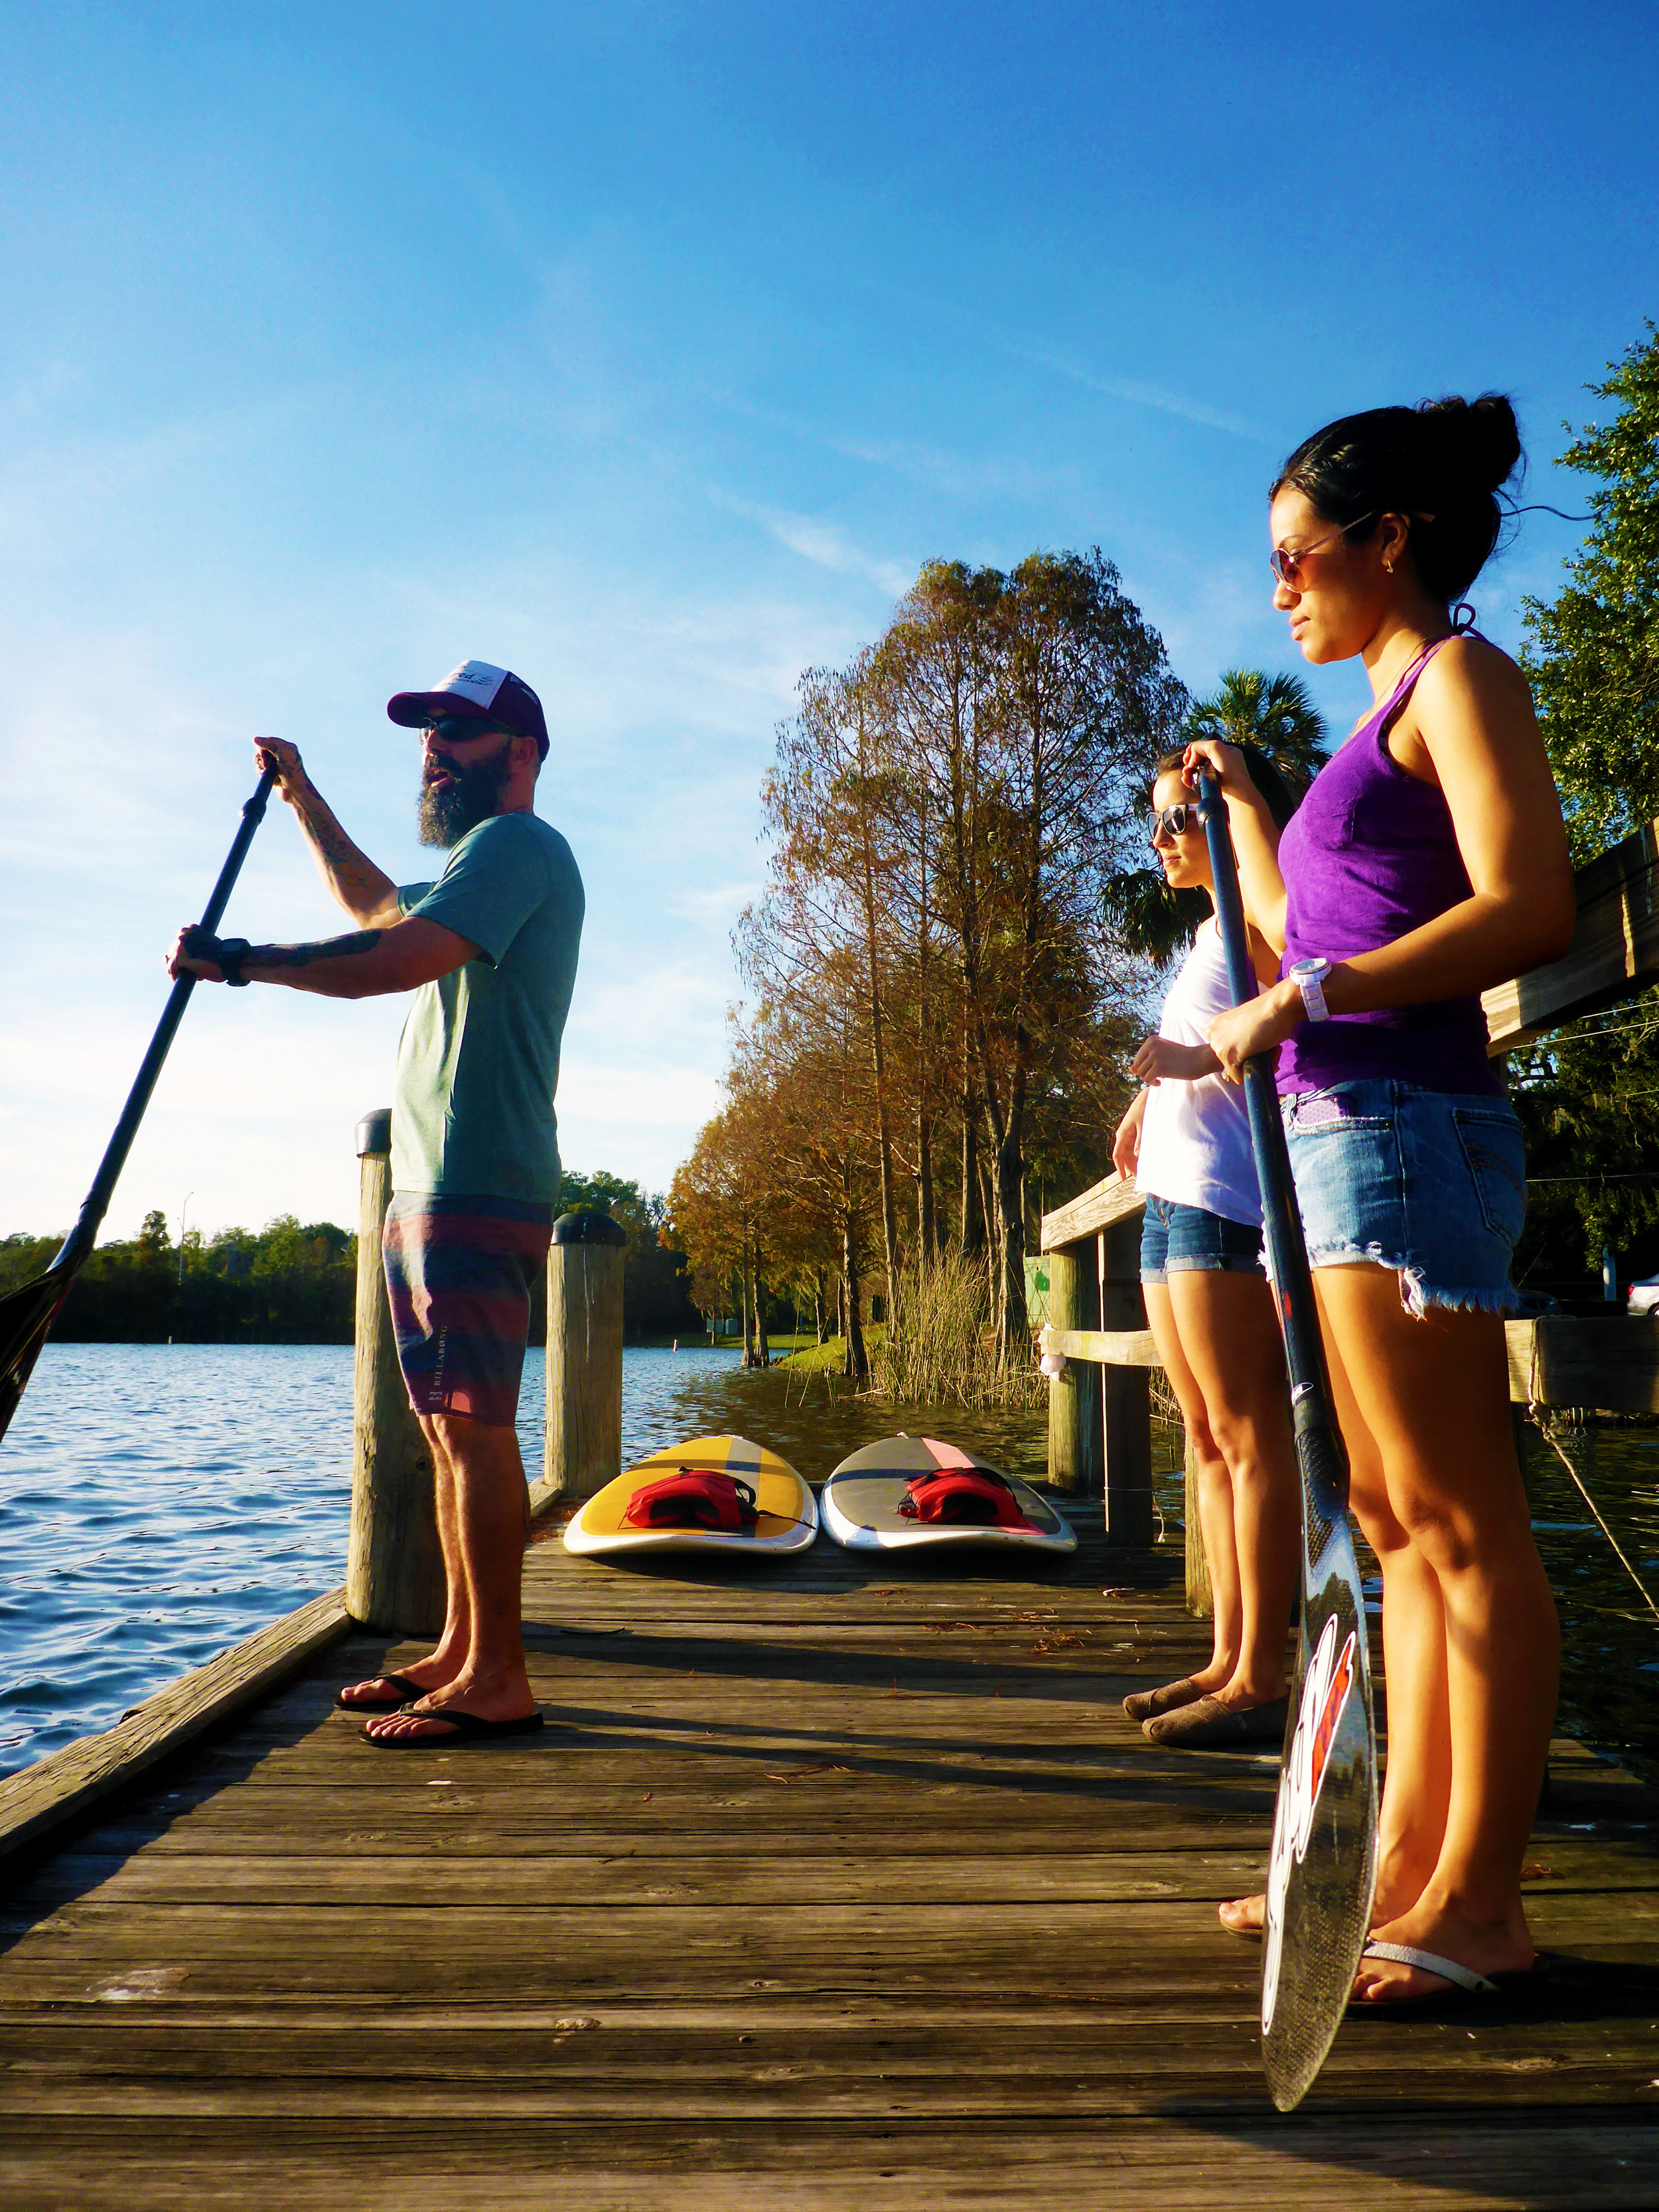 Get Local Tour Guide, Das,Providing a little Paddleboard Instruction